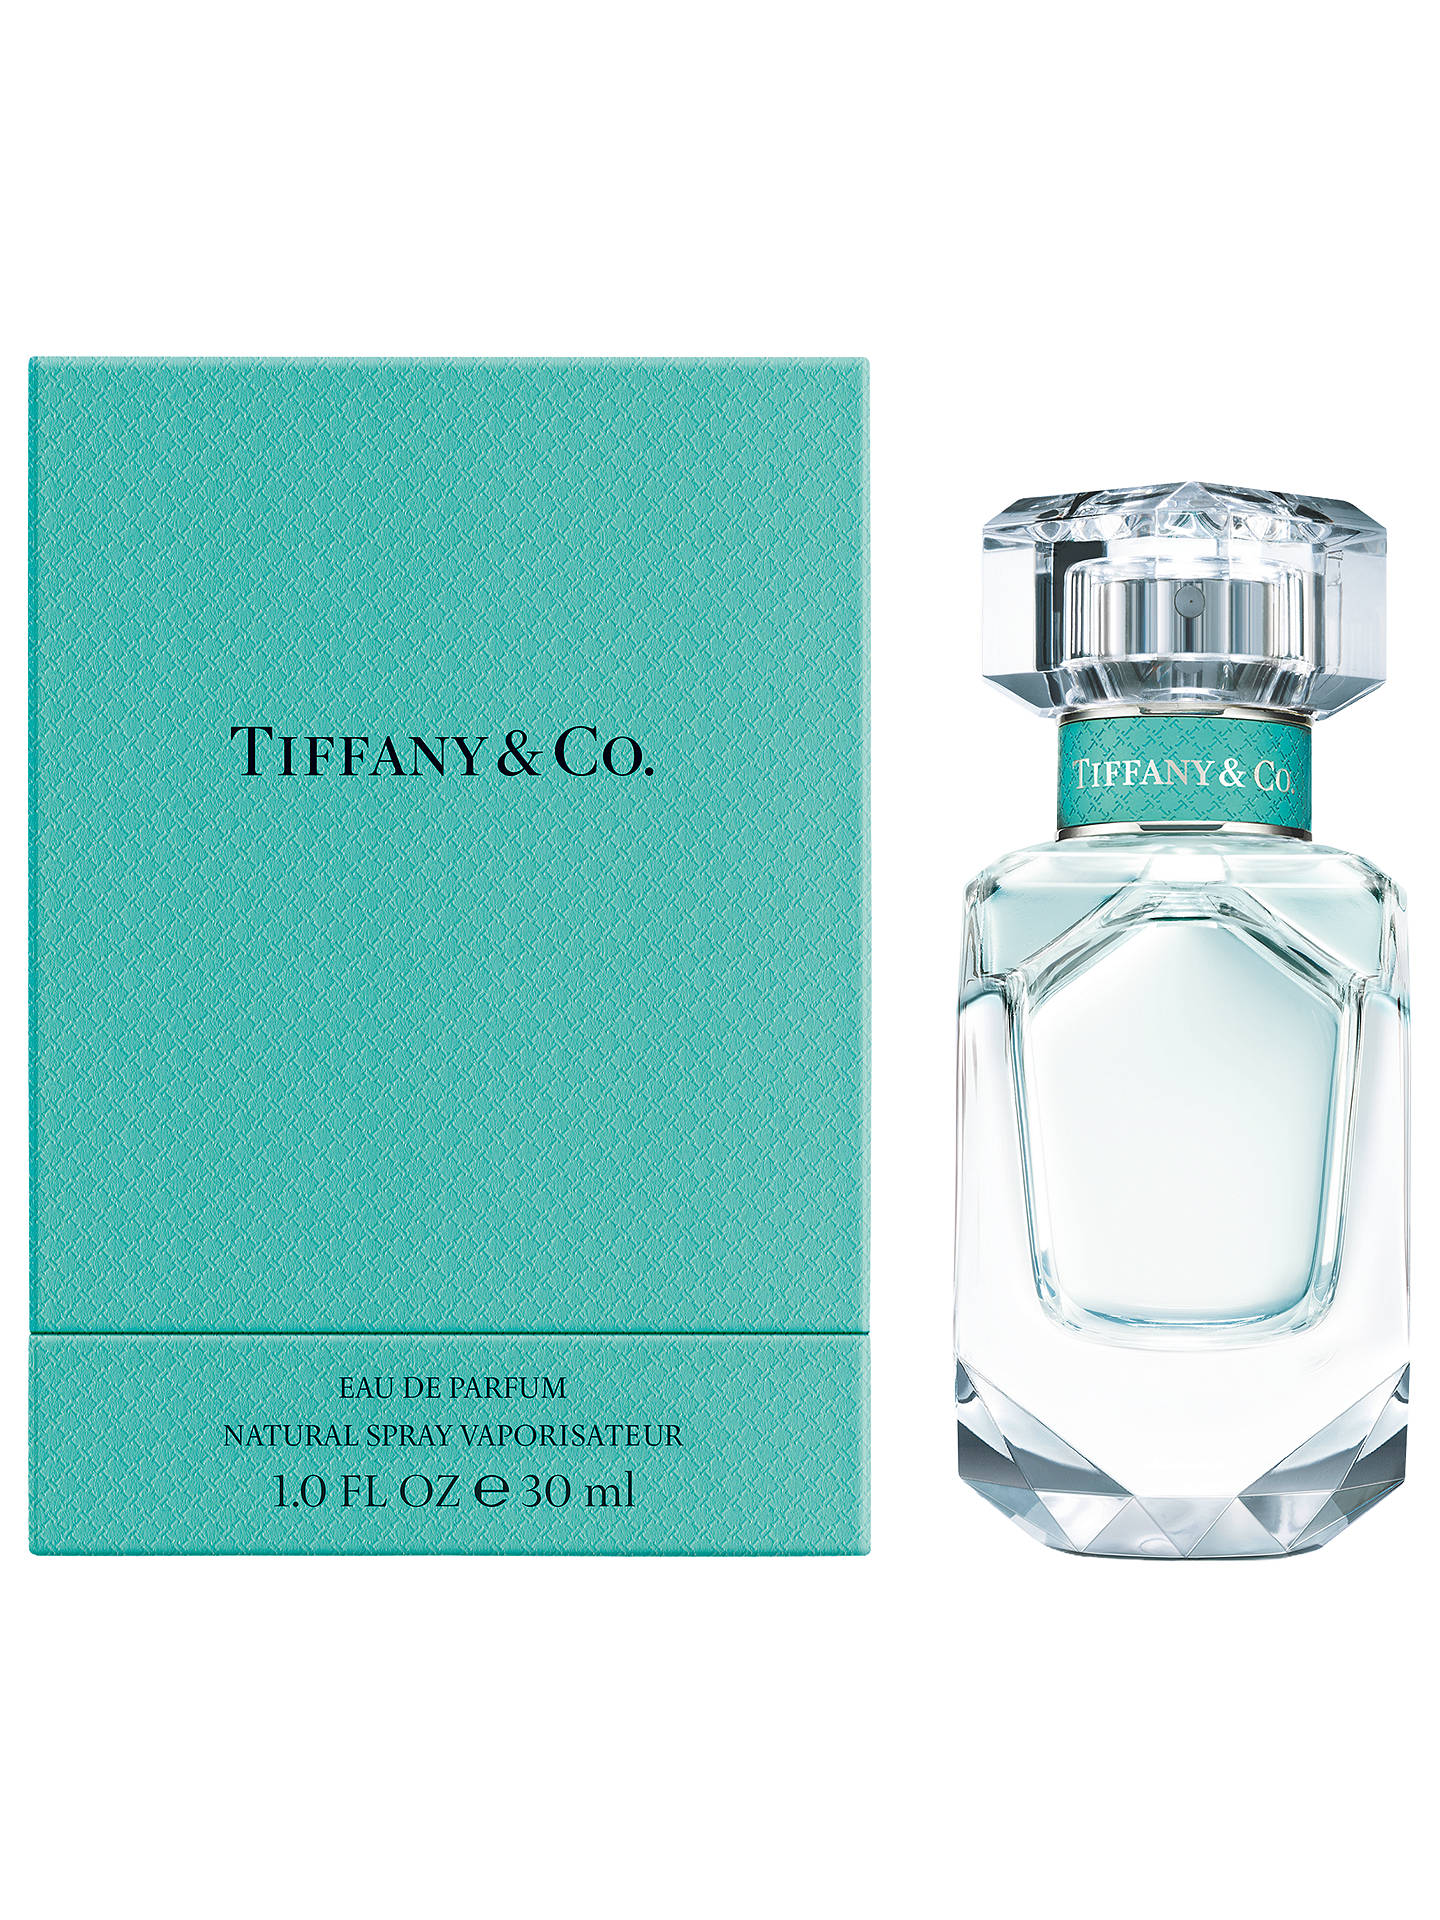 BuyTiffany & Co Eau de Parfum, 30ml Online at johnlewis.com